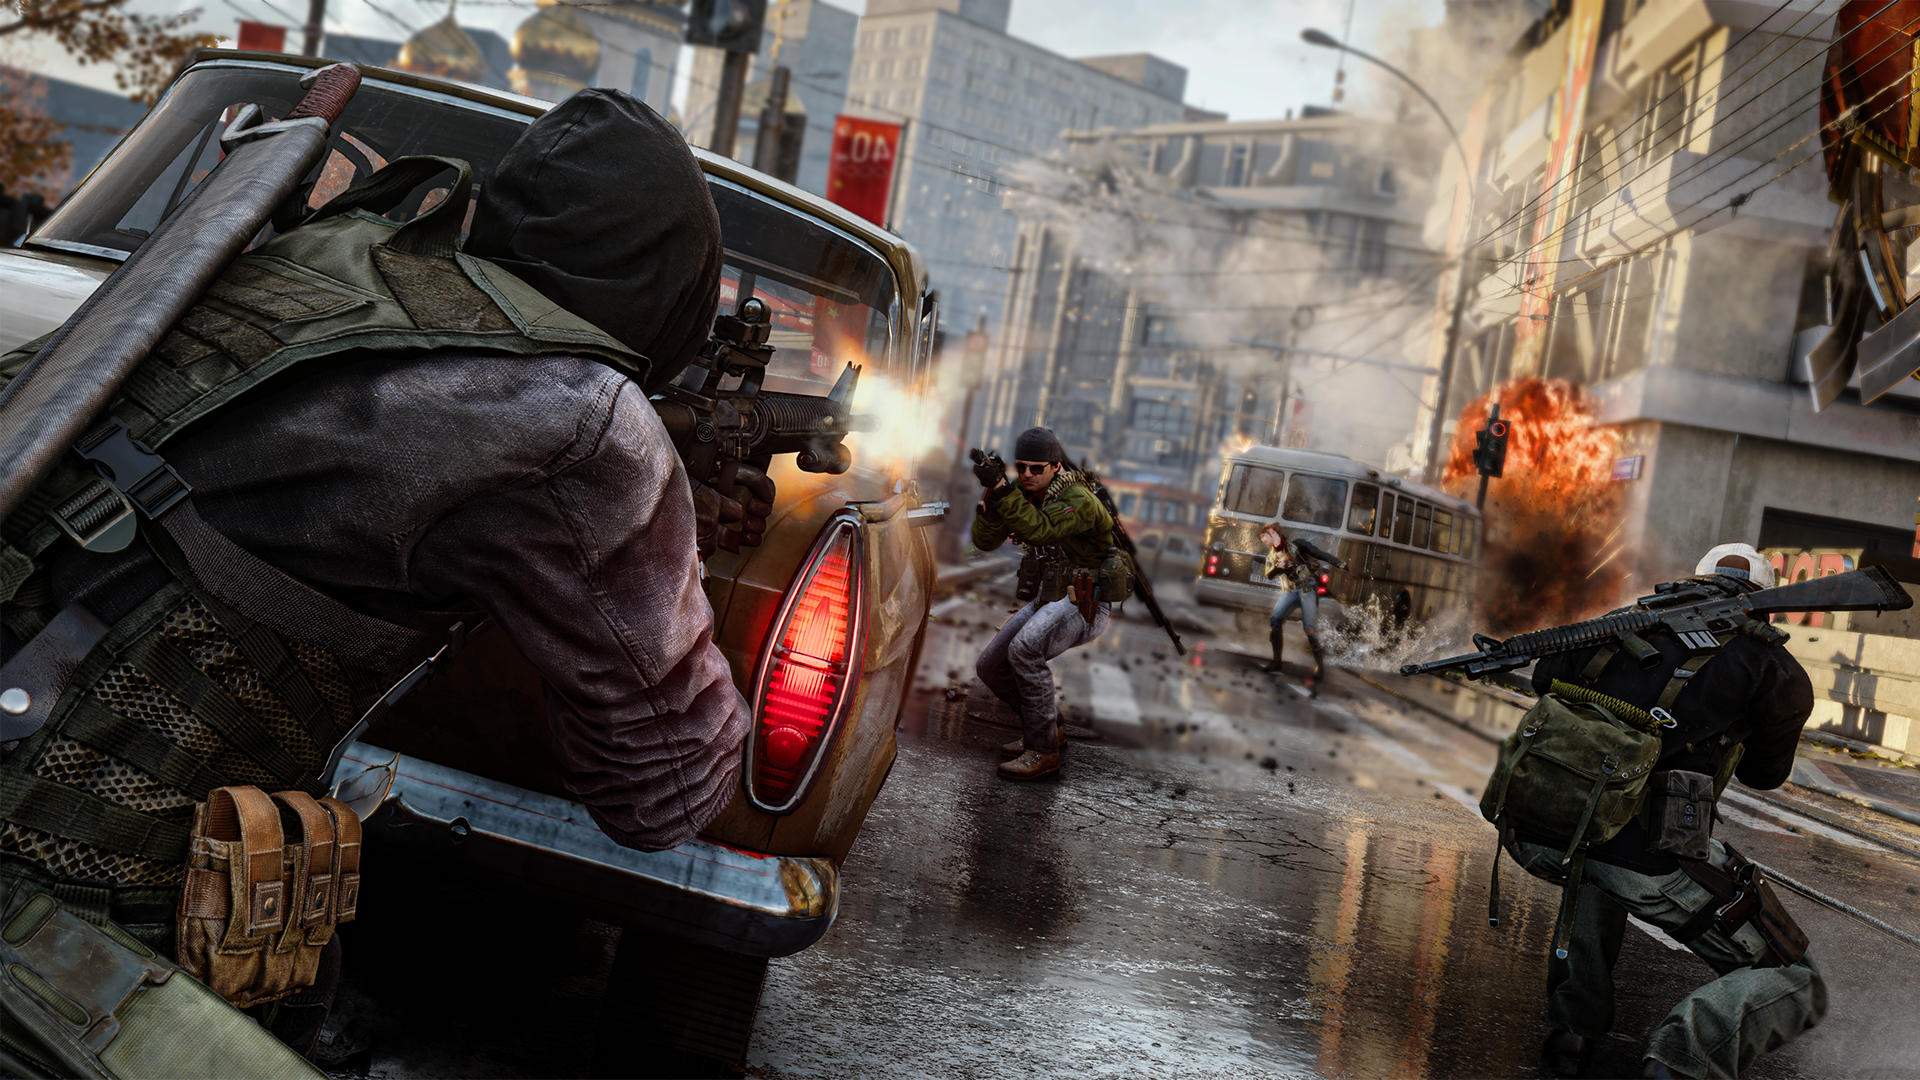 Players hunker behind cars and wreckage to avoid being taken out in Black Ops Cold War.